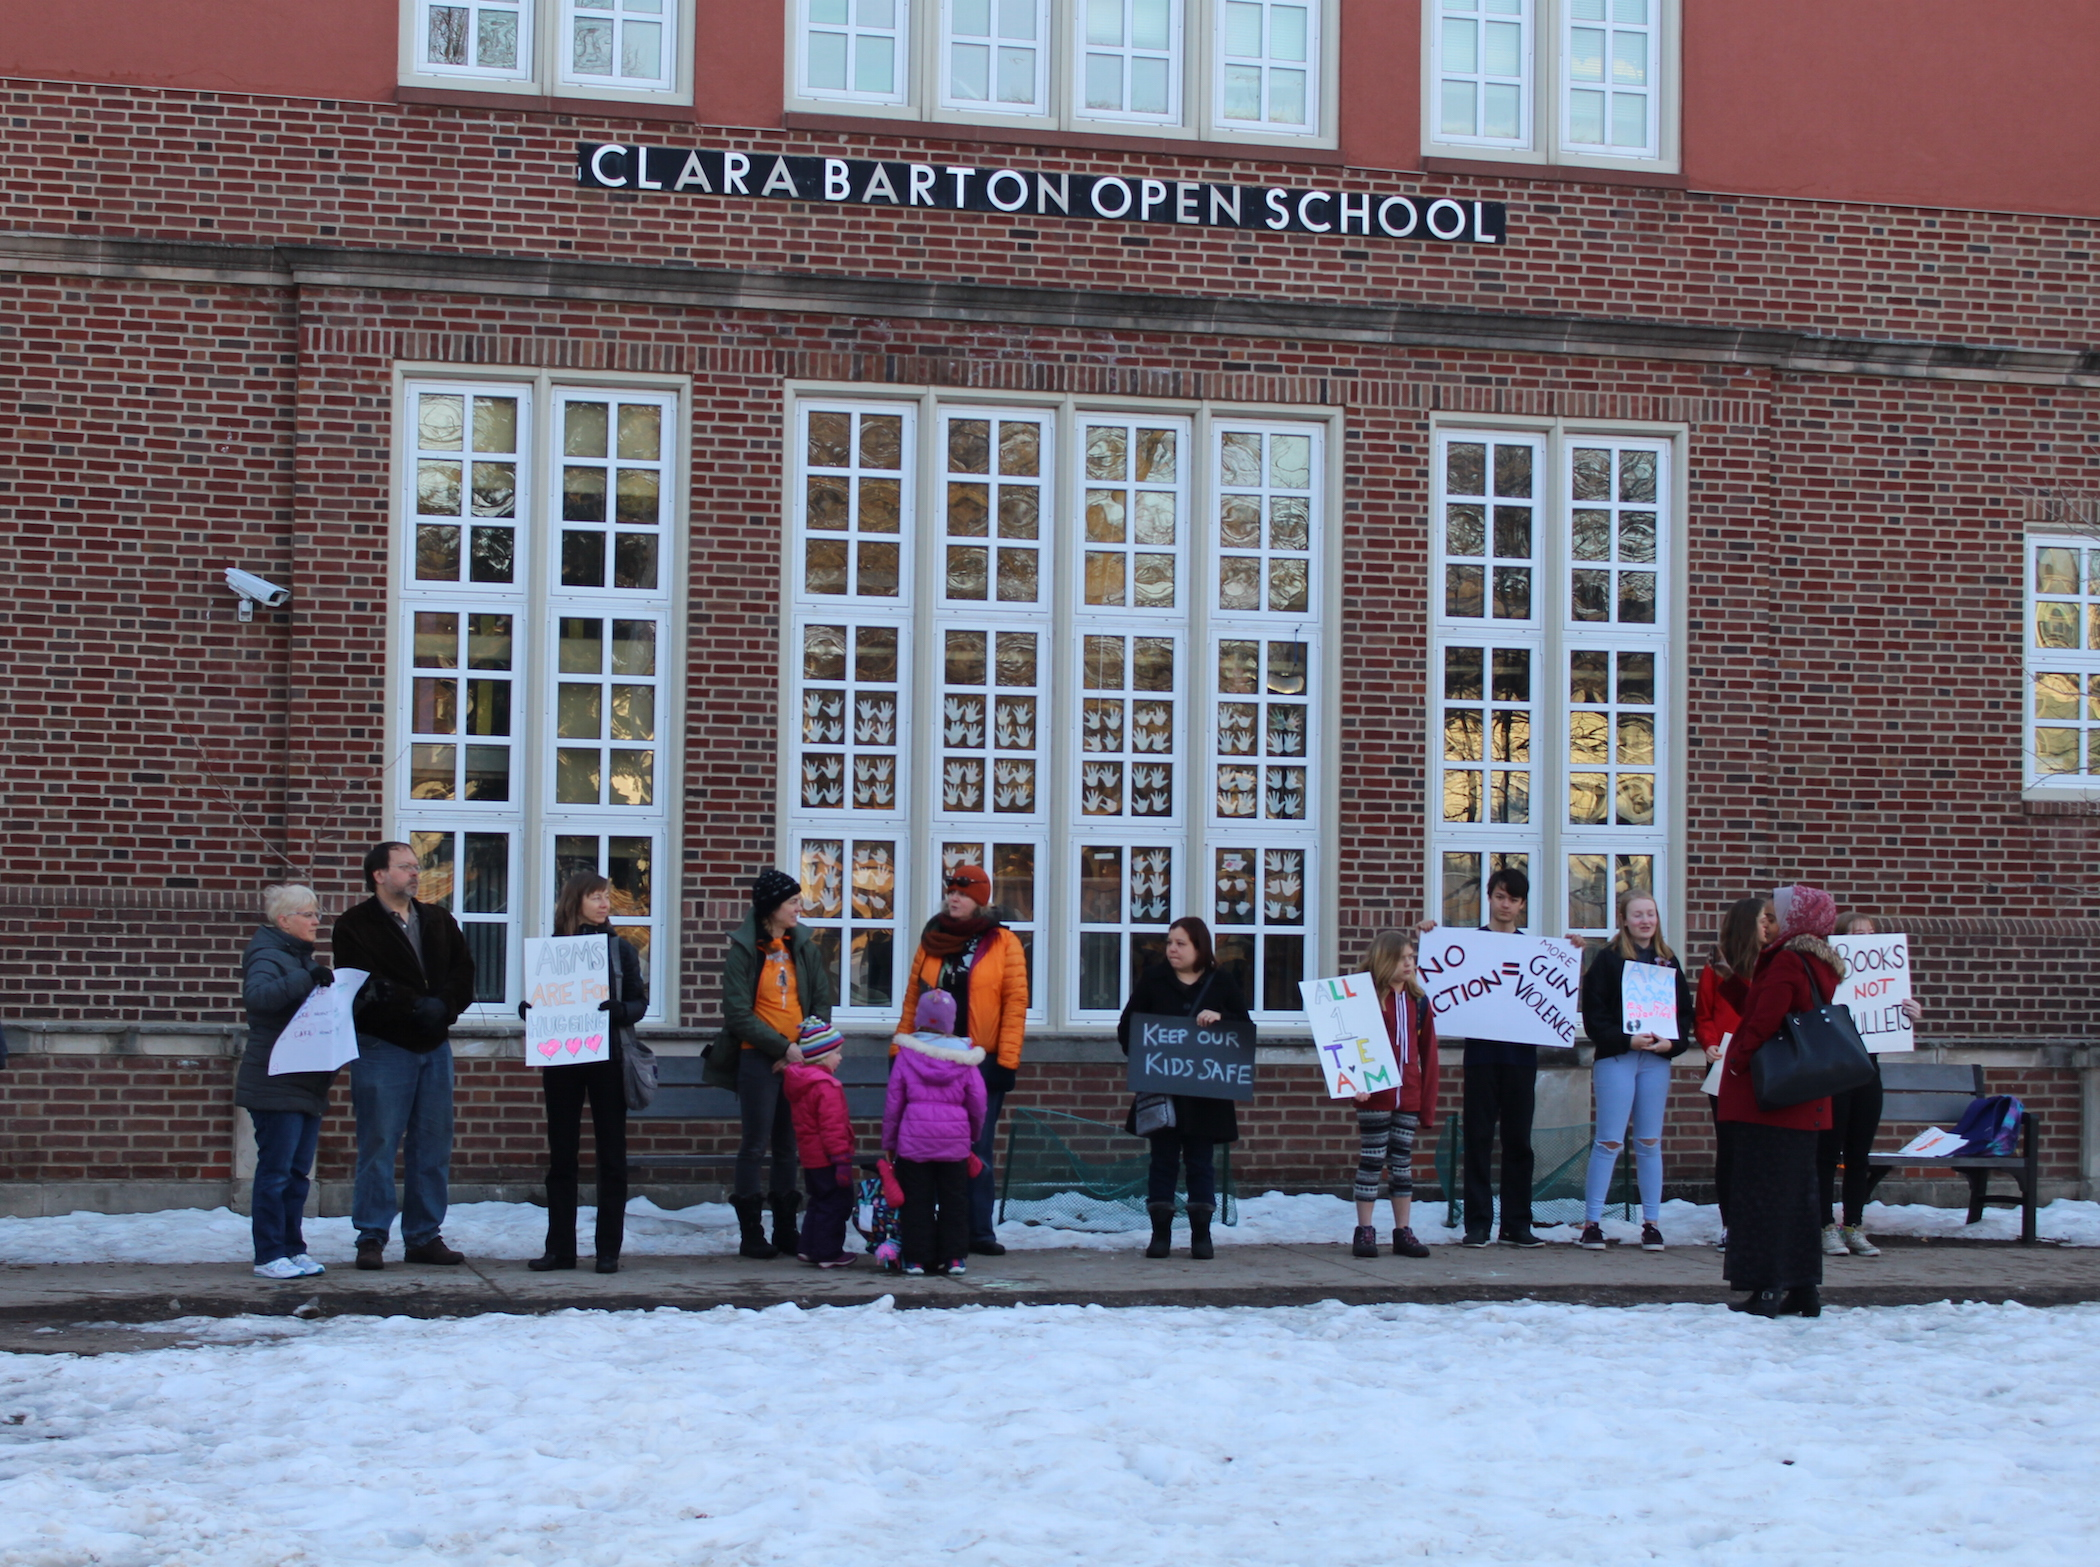 Parents rallied for school safety Friday morning outside of Clara Barton Open School.